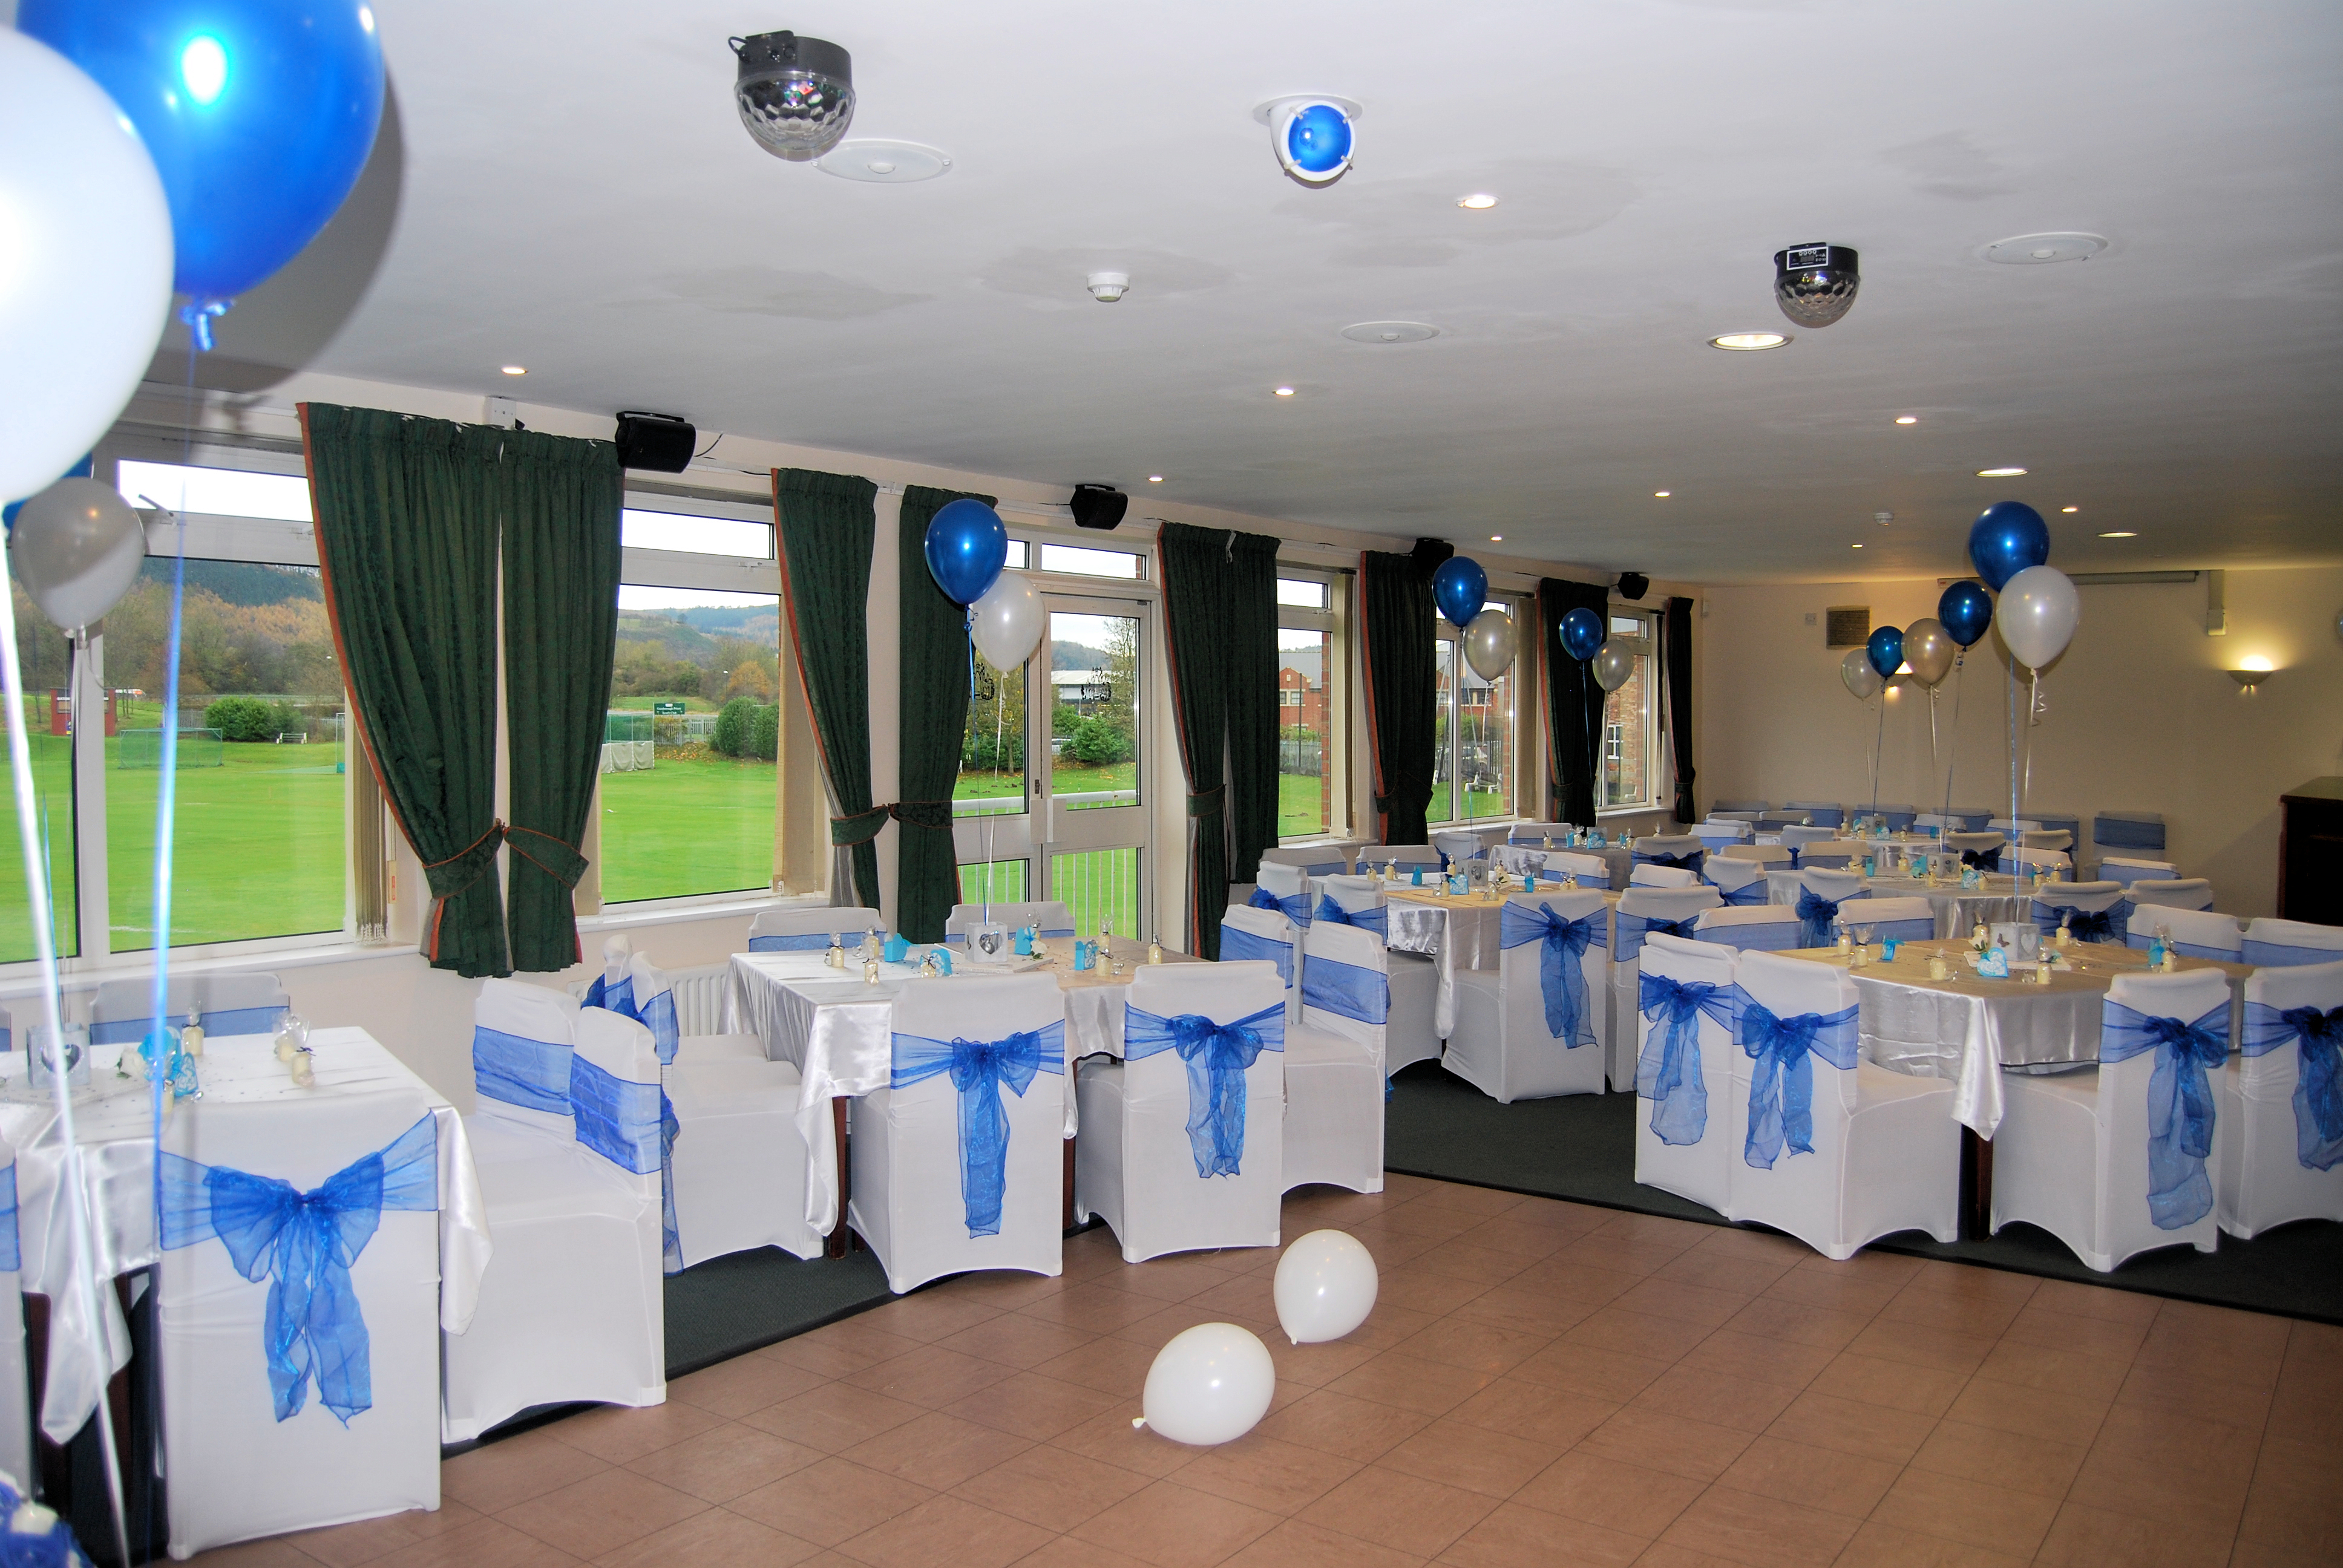 be1040264f4 Host social events in our superb function room seating 100 with bar    kitchen facilities. The function room is available for private hire for  both evening ...